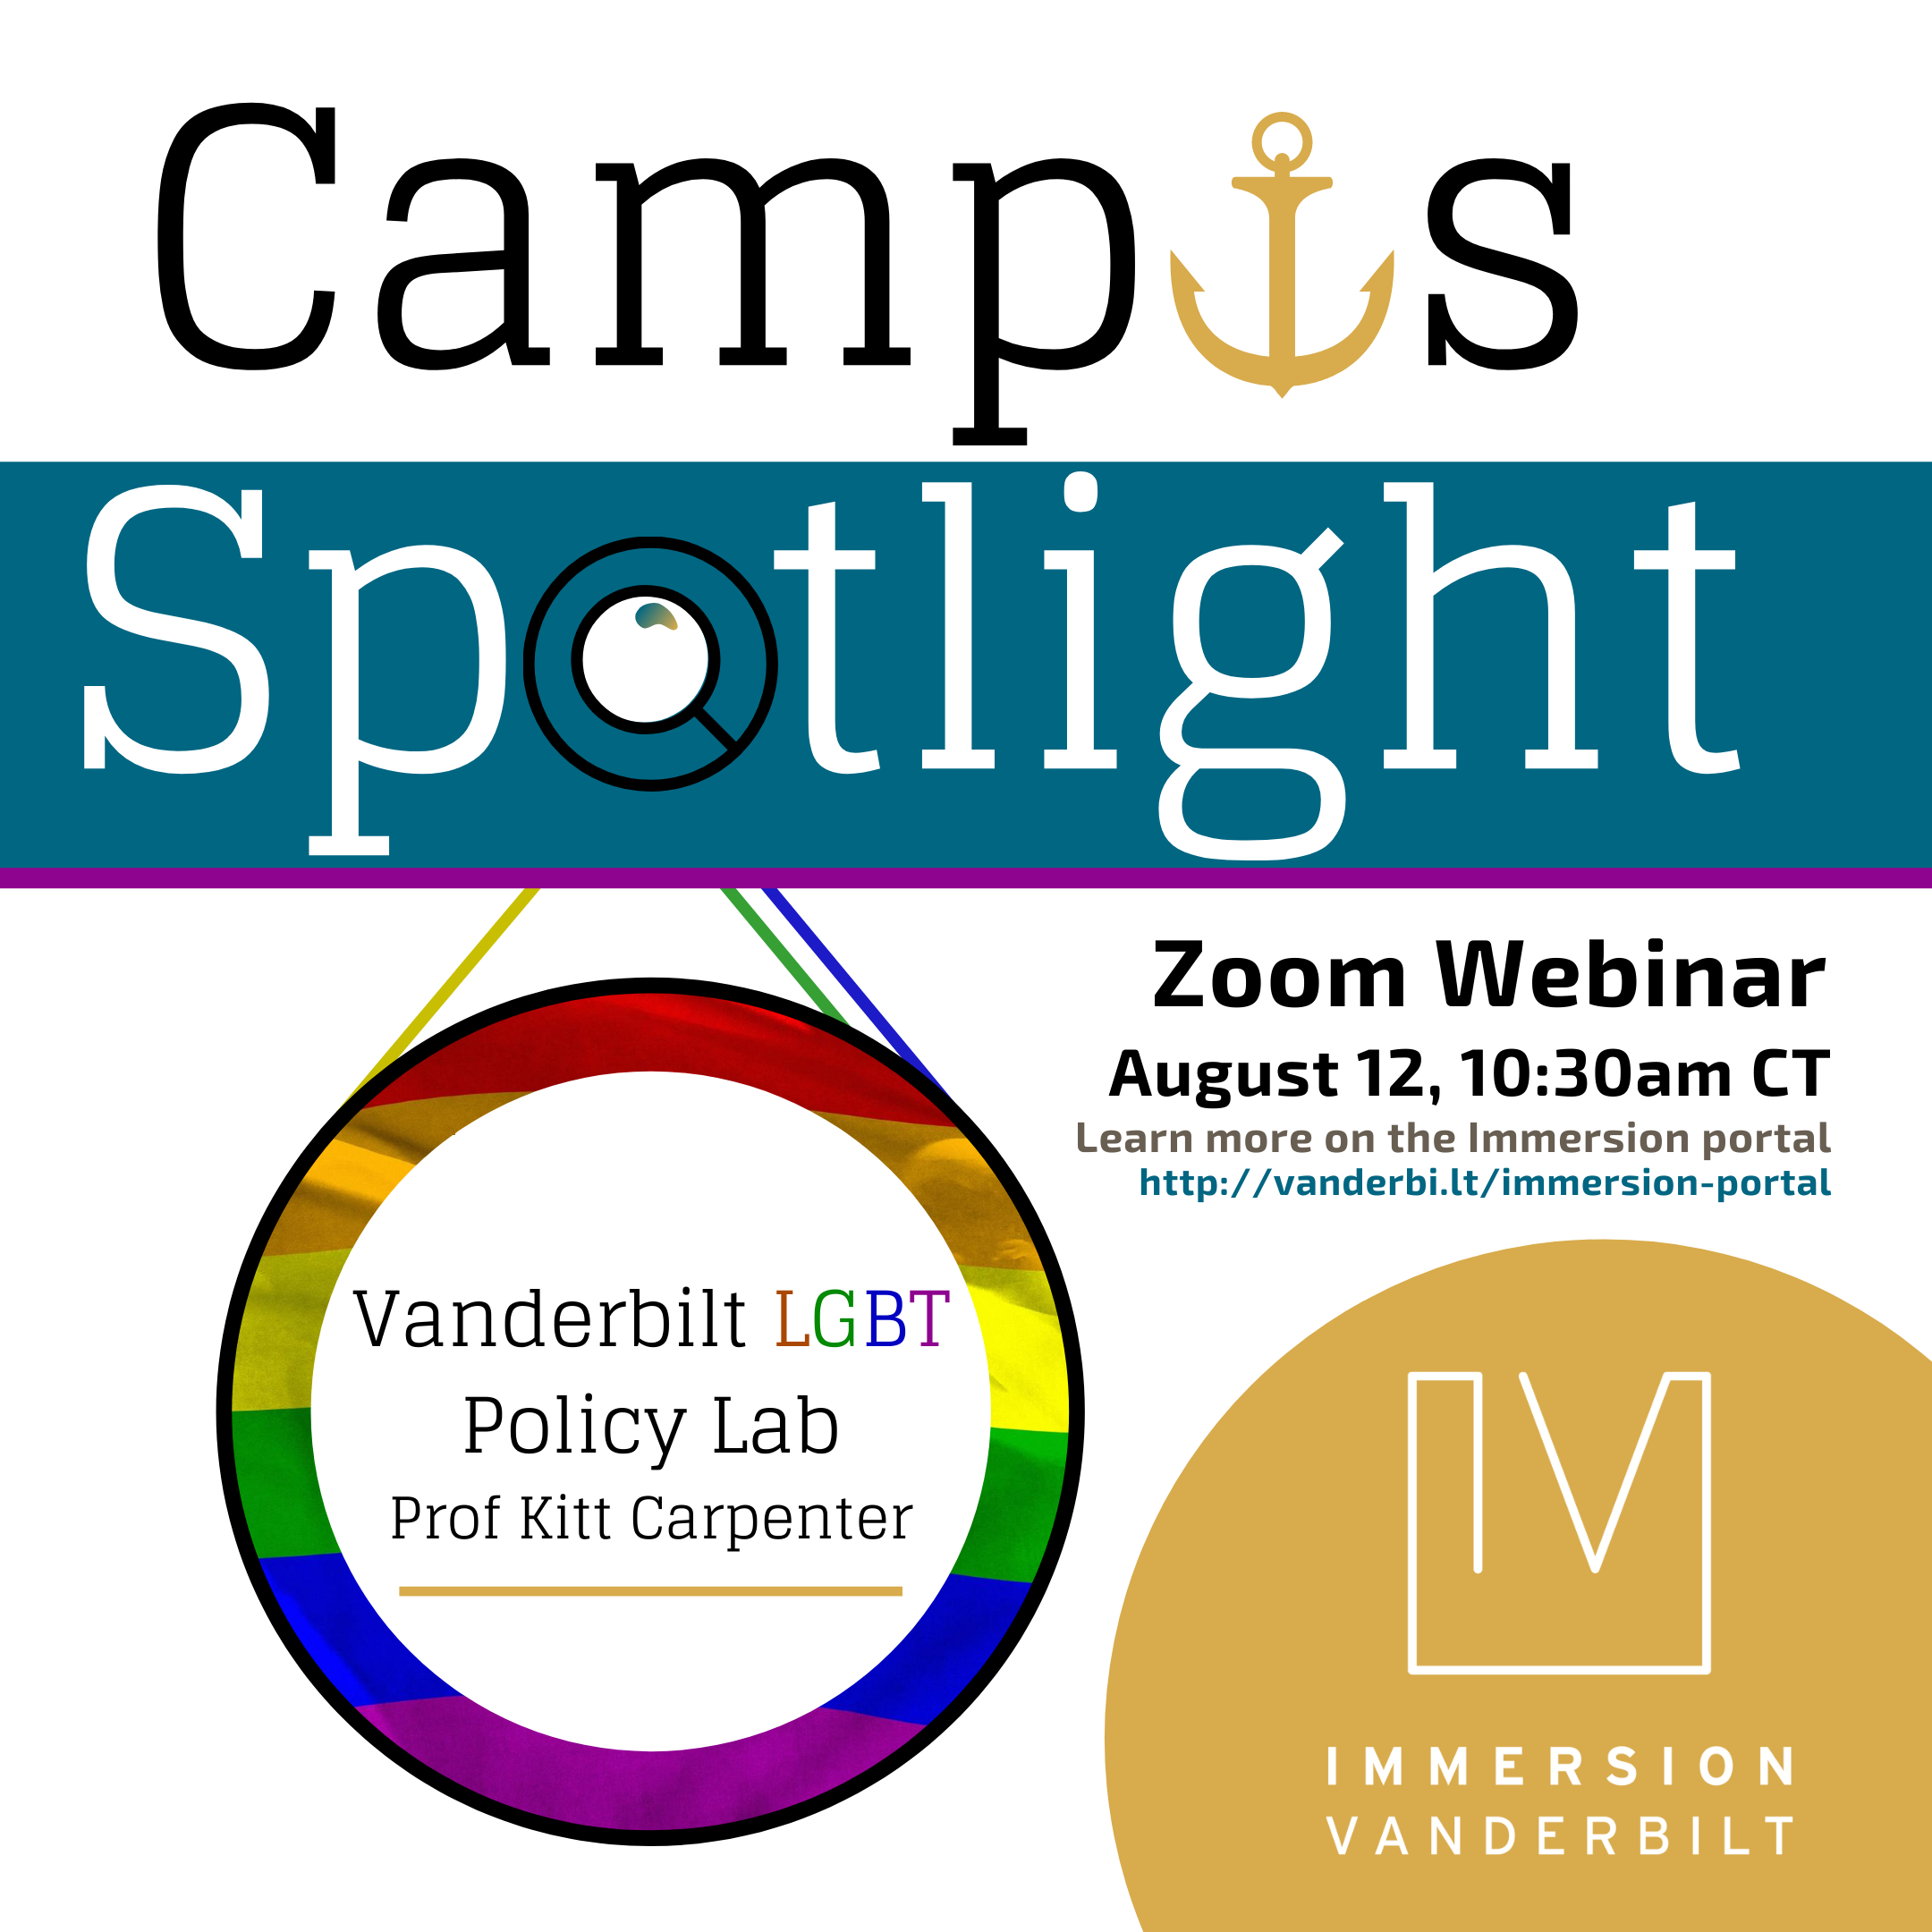 """Graphic advertising a Zoom webinar with the LGBT Policy Lab, depicting a magnifying glass spotlighting a pride flag with text """"Vanderbilt LGBT Policy Lab"""""""